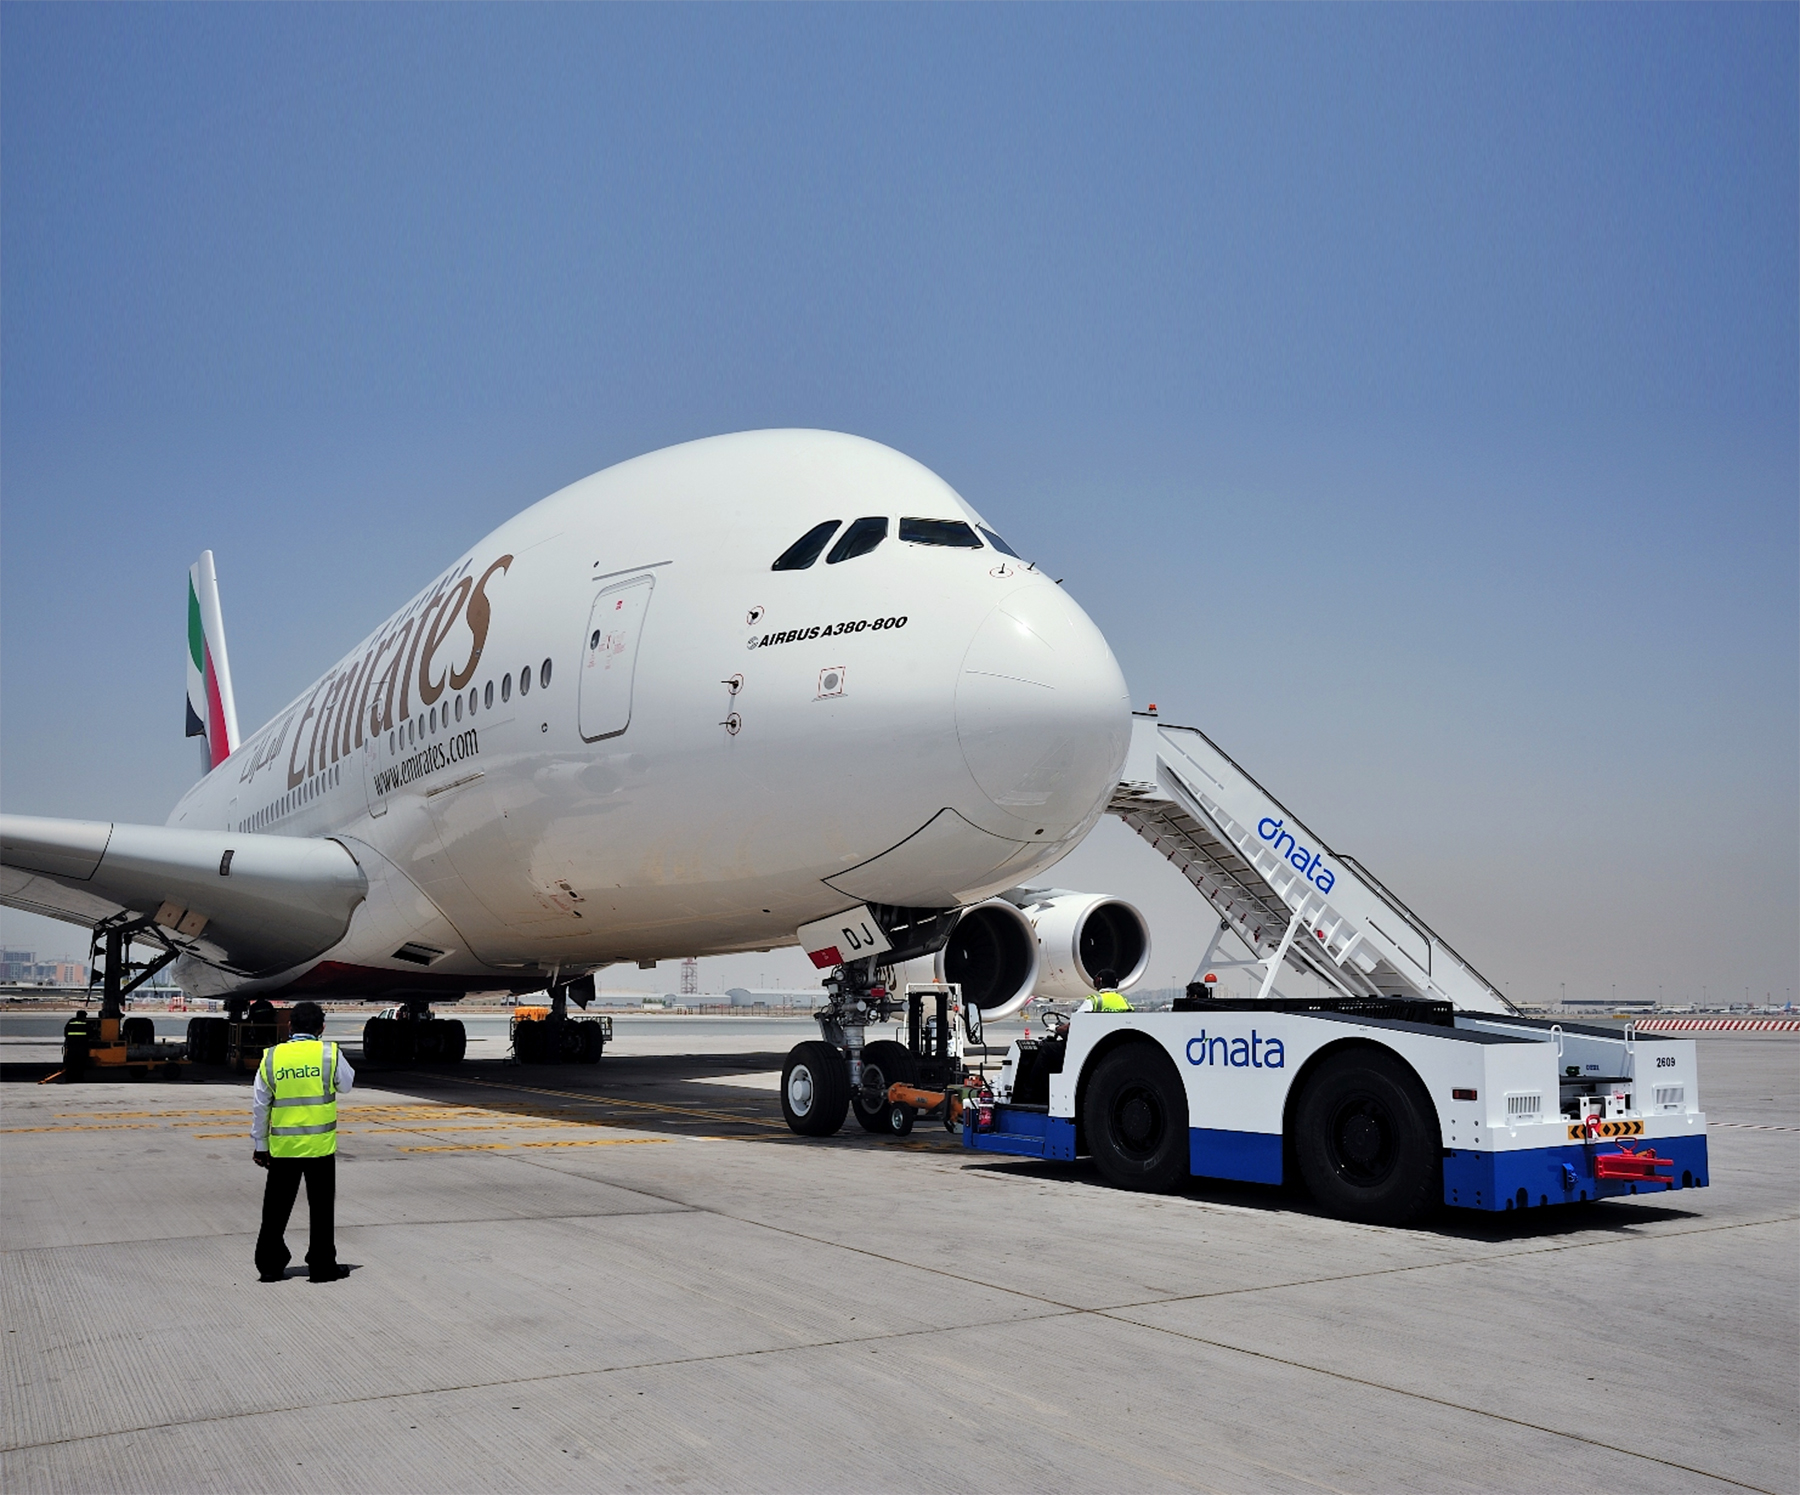 BREAKING! Emirates suspends all passenger flights | Points to be Made